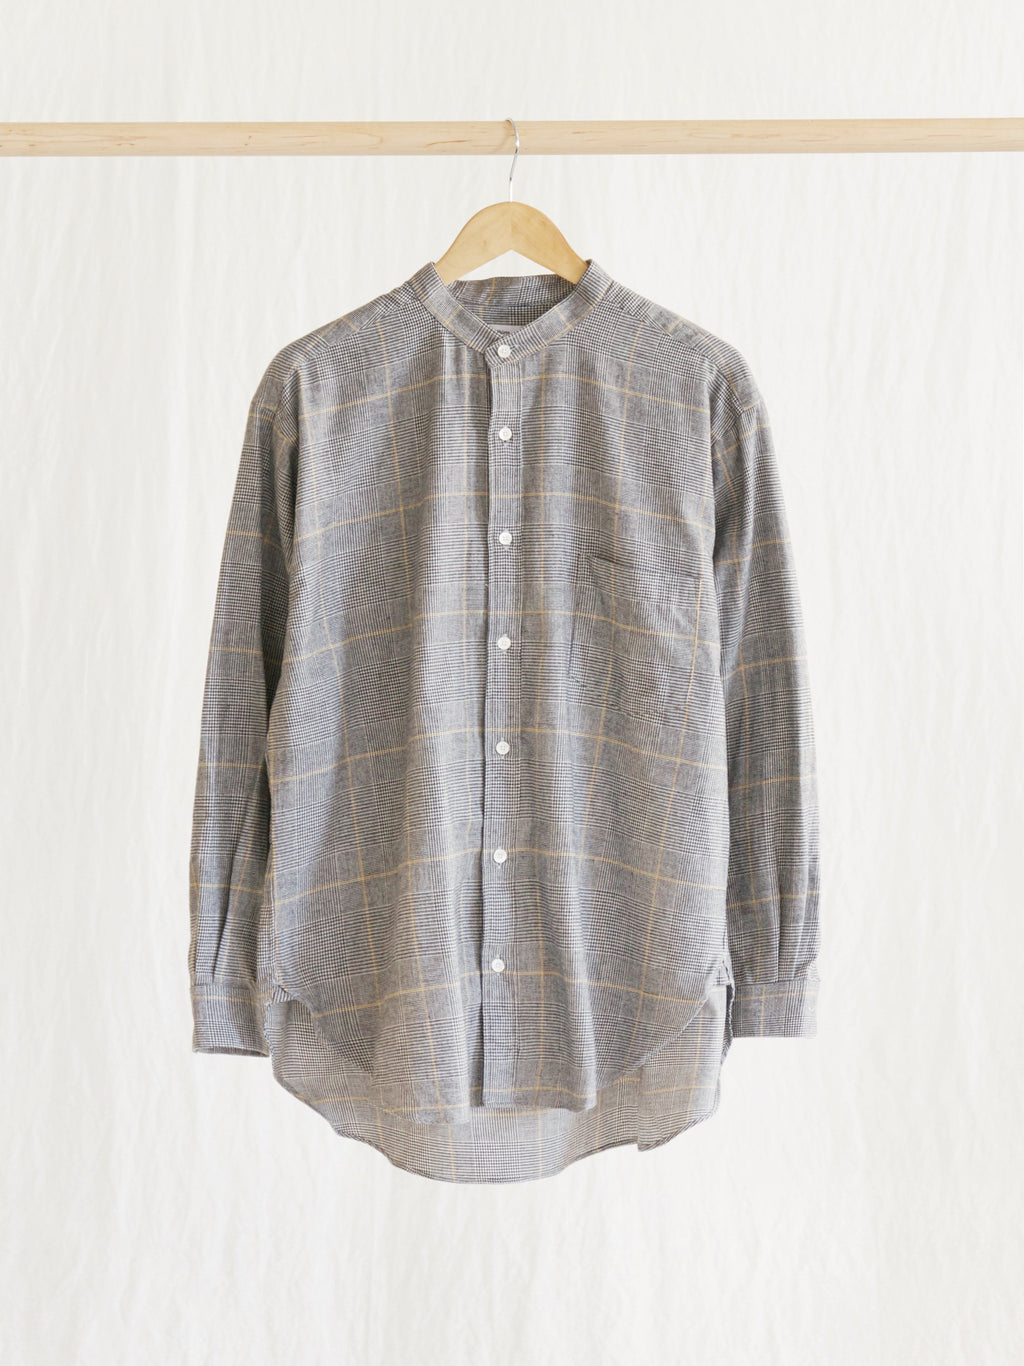 Namu Shop - Niche Glencheck Band Collar Shirt